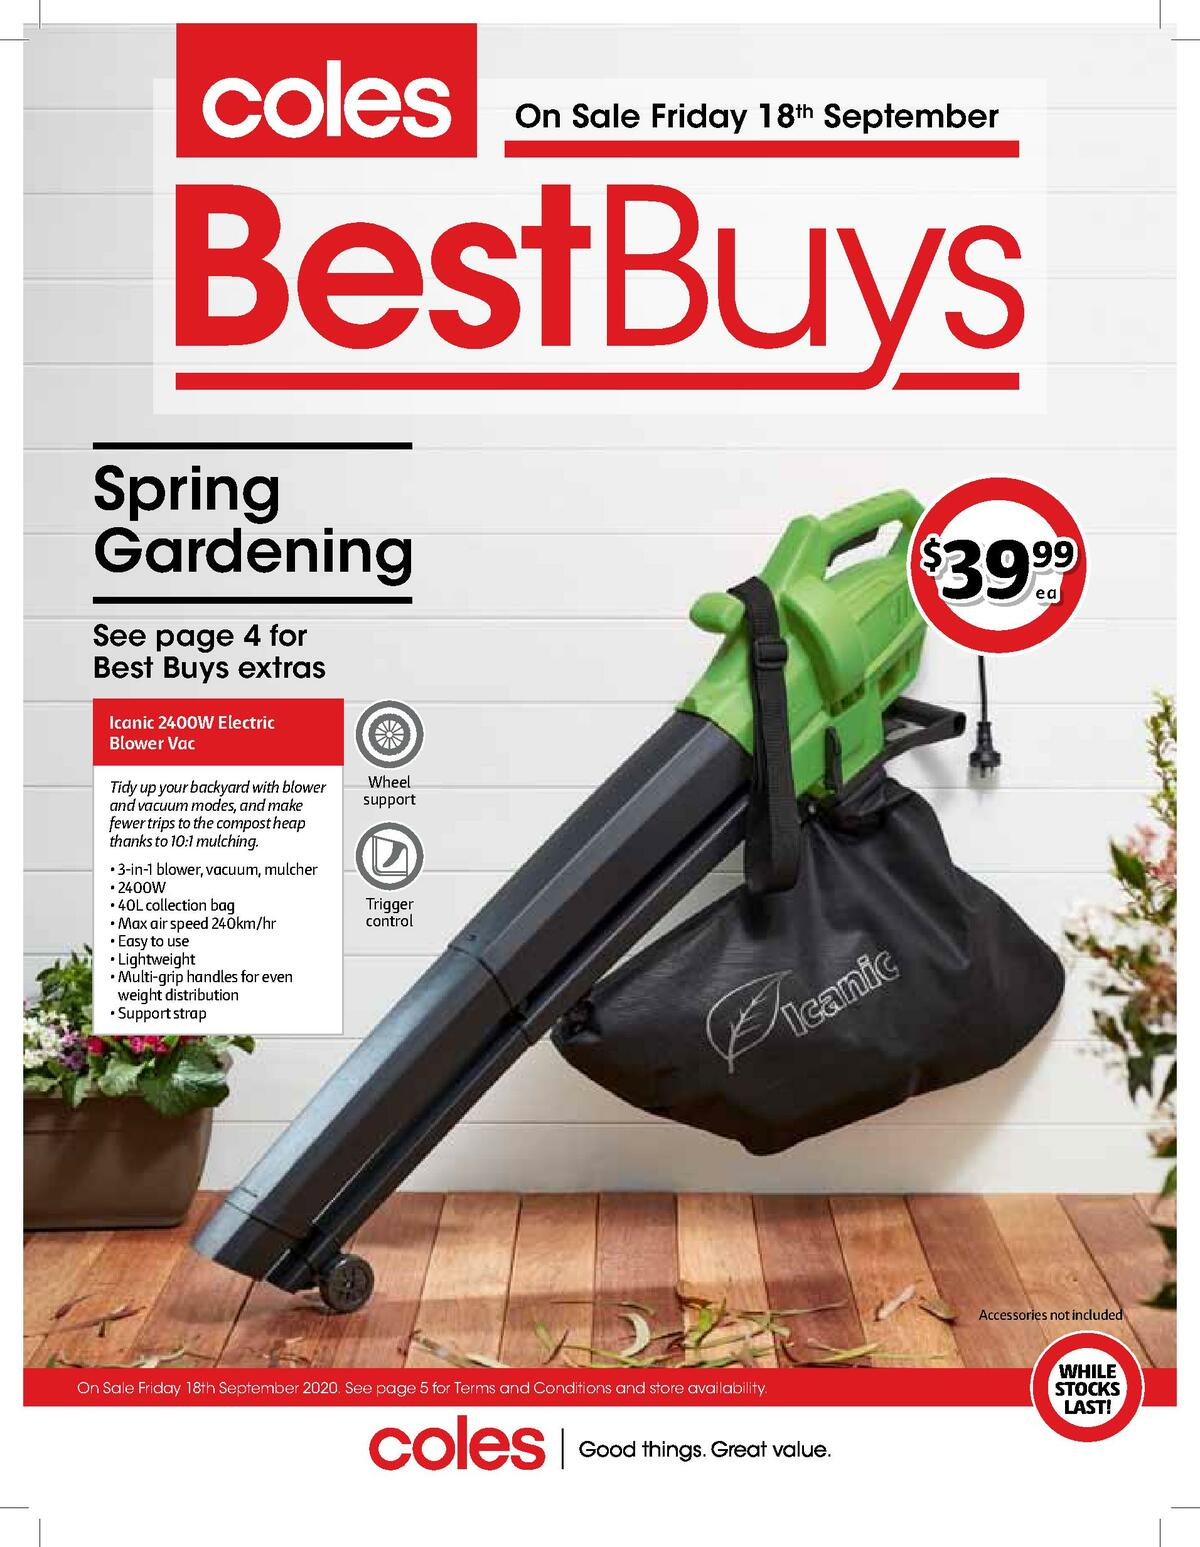 Coles Best Buys Catalogues from September 18